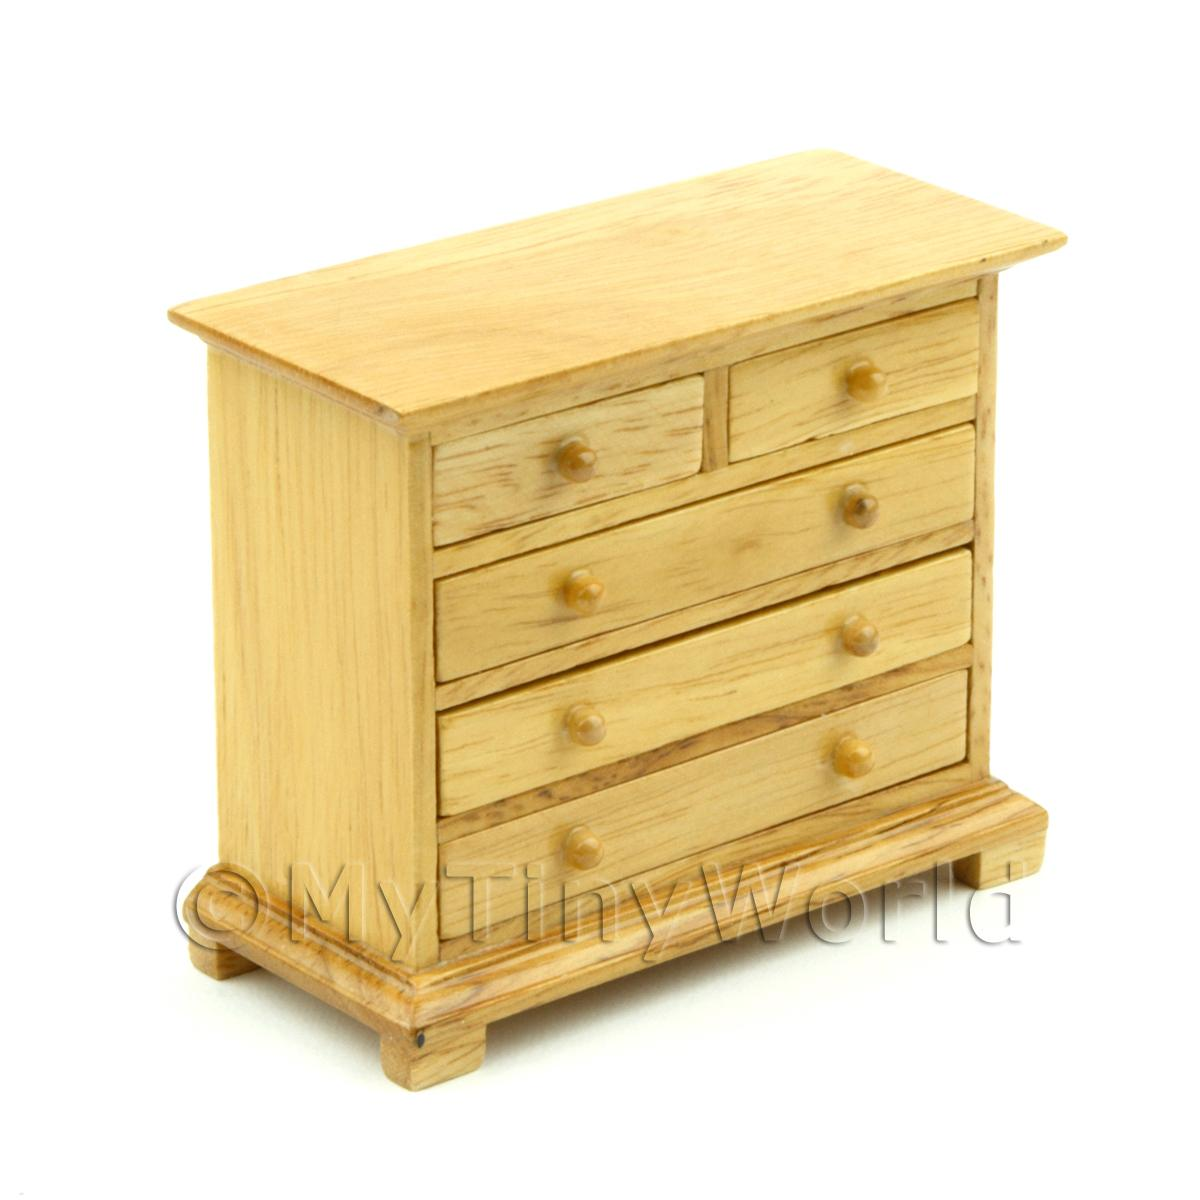 Dolls House Miniature Solid Wood Chest of Drawers